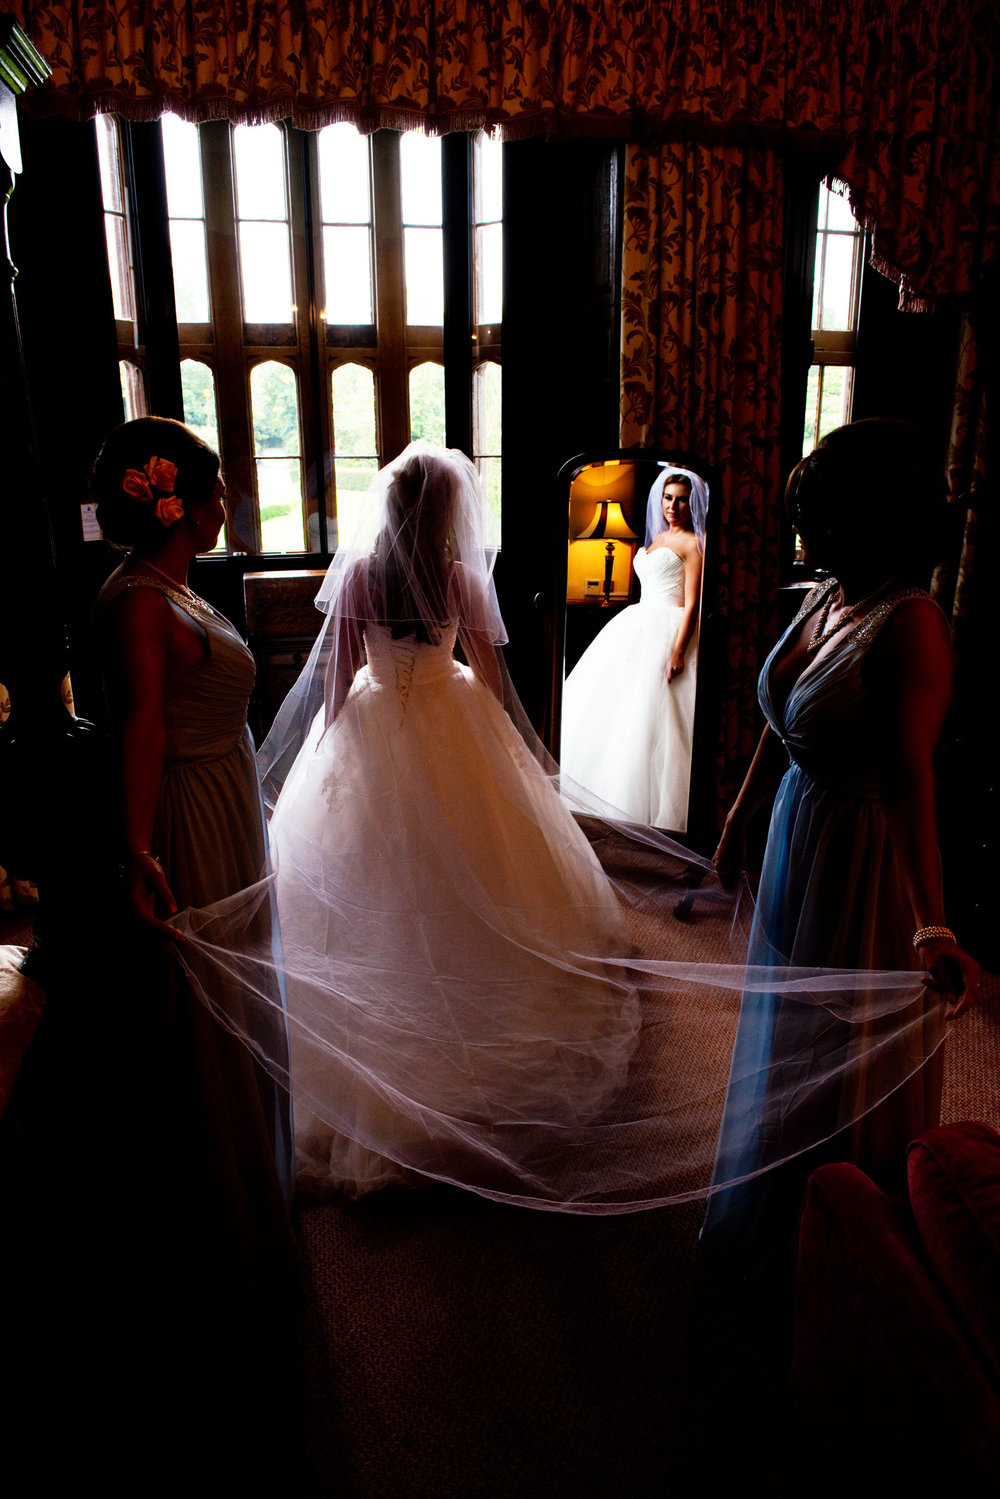 A final look before the bridesmaids take the bride to the Ceremony